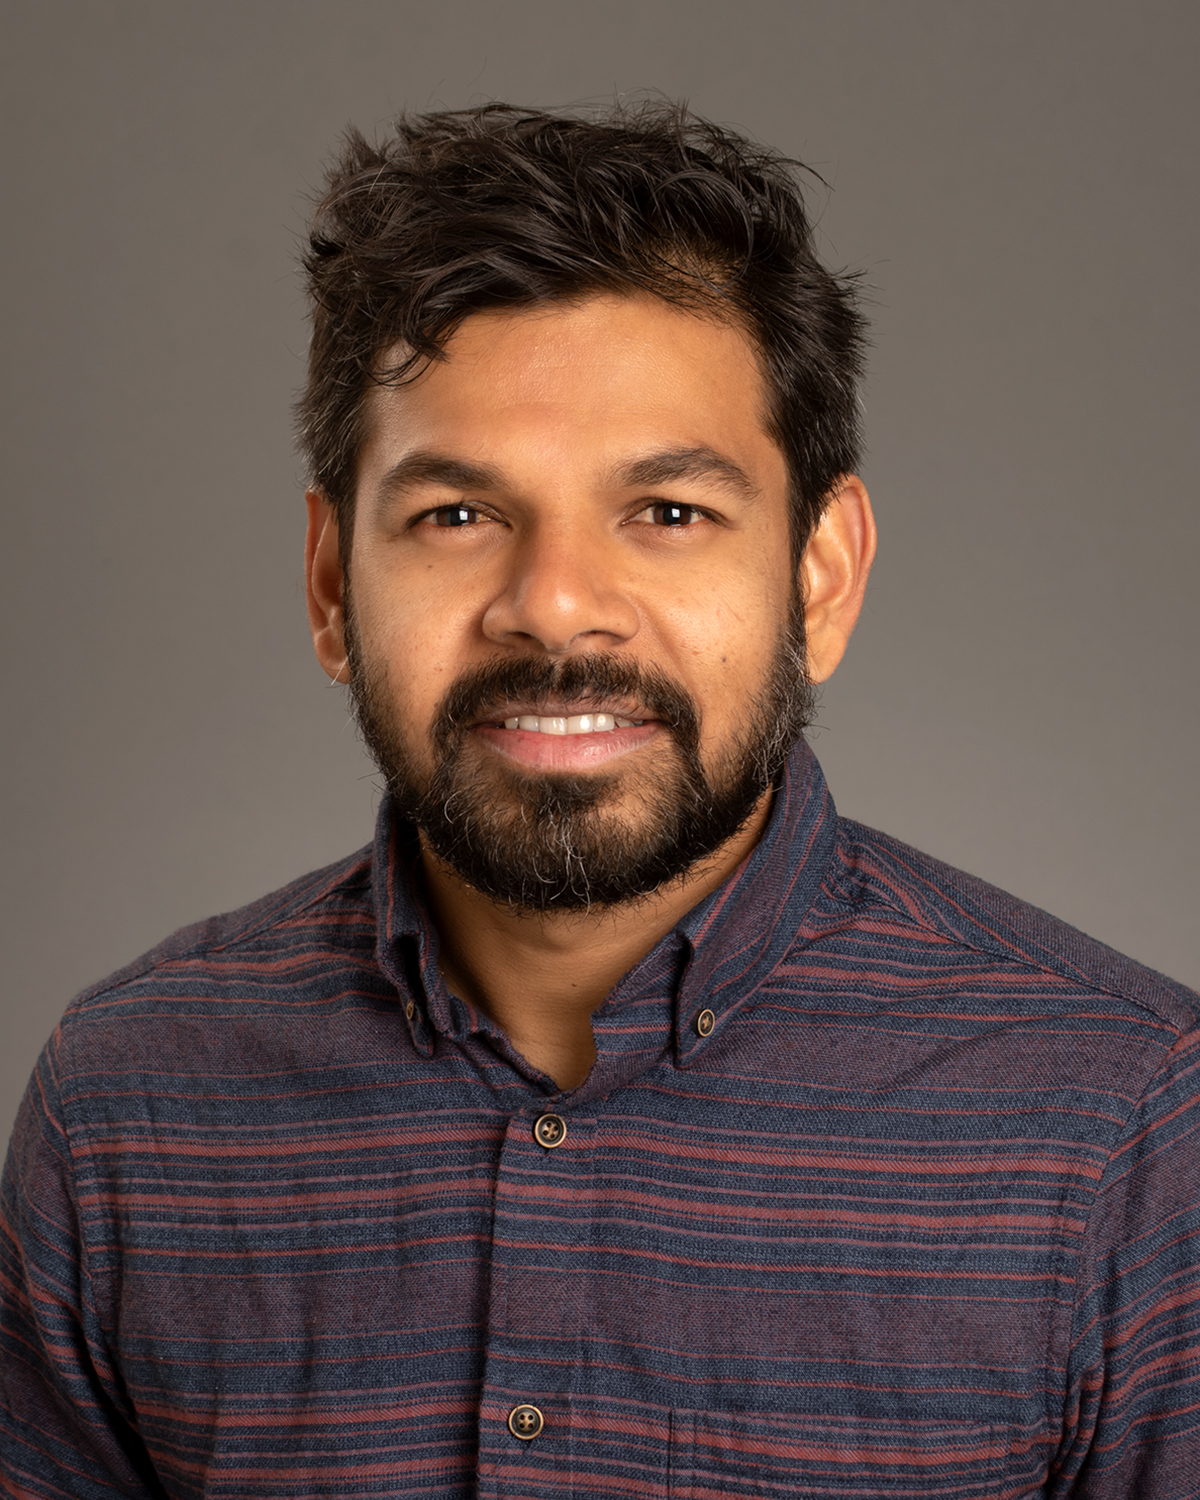 Anand Roopsind, Biology/HES, faculty/staff, studio portrait by Priscilla Grover